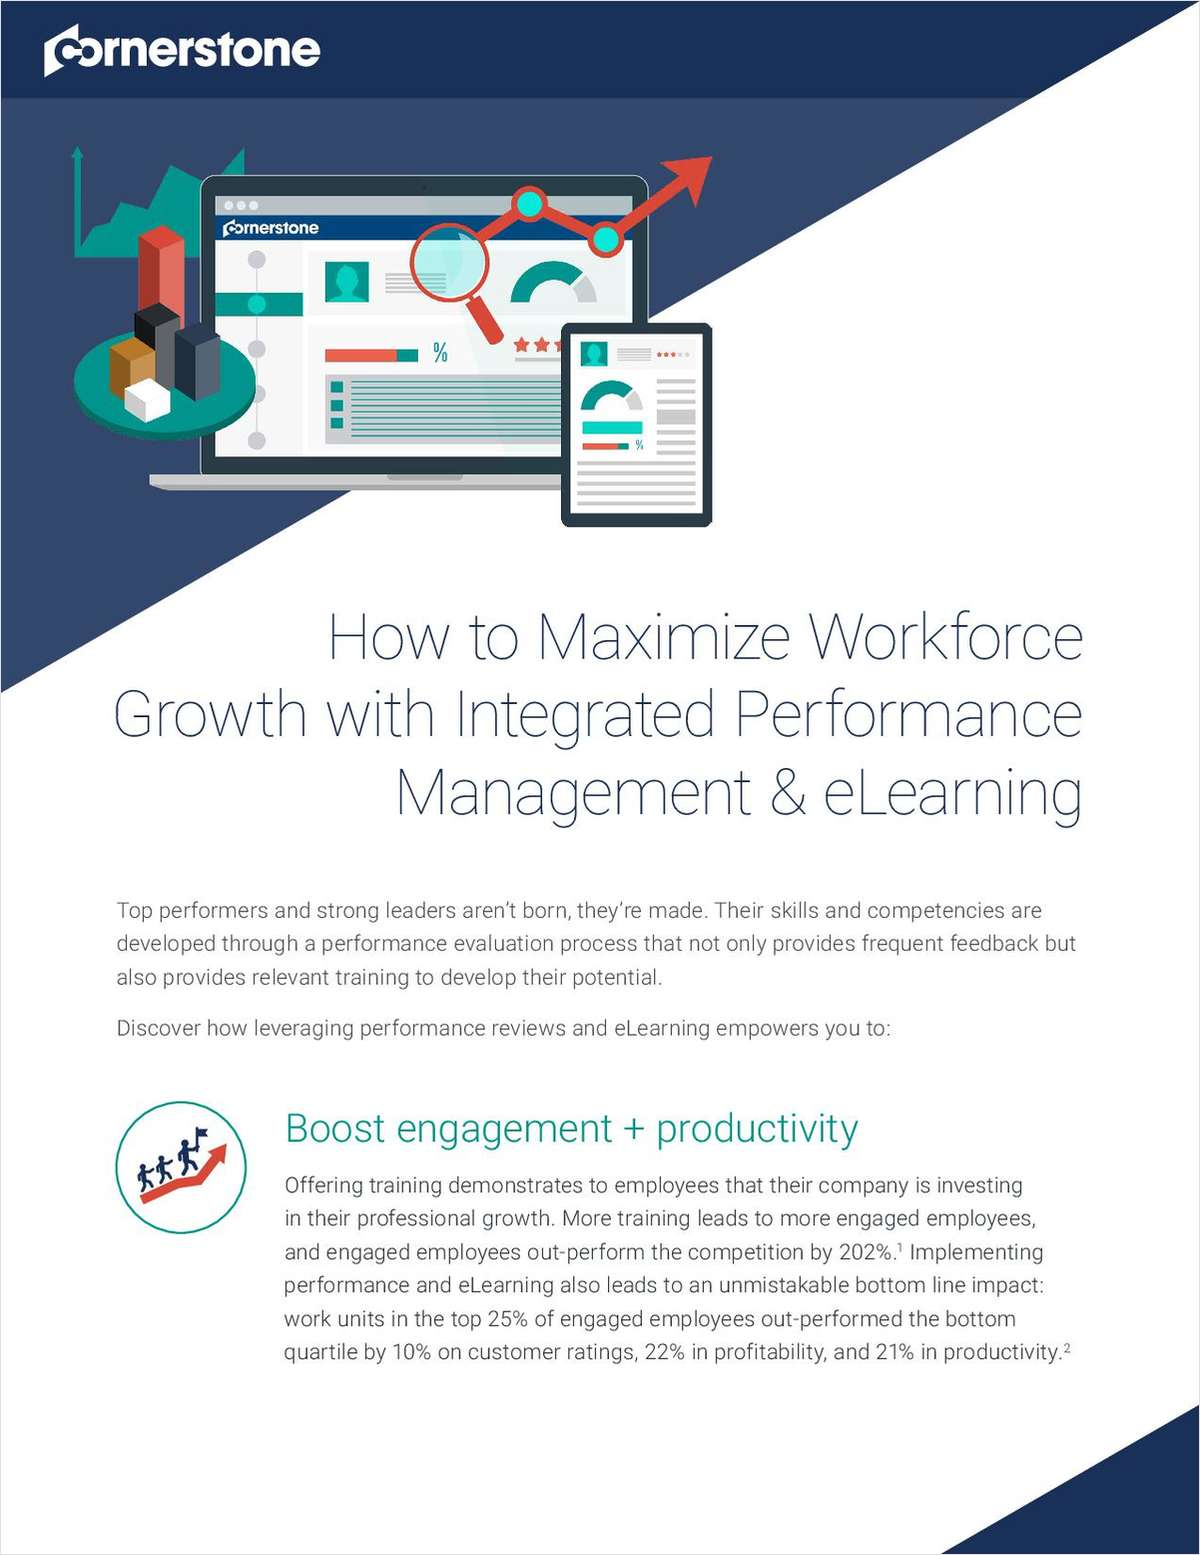 How to Maximize Workforce Growth with Integrated Performance Management and eLearning